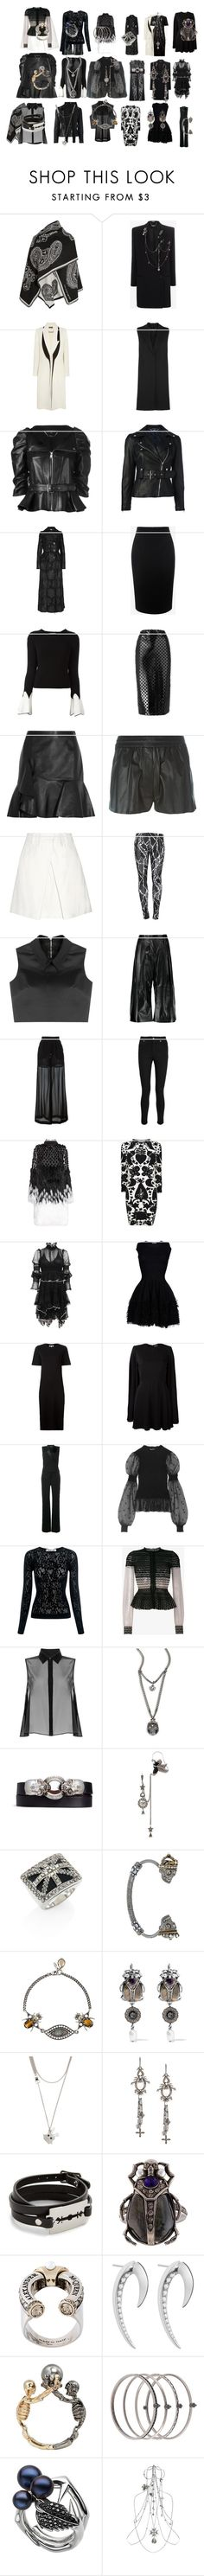 """""""Untitled #4247"""" by luciana-boneca on Polyvore featuring Alexander McQueen, McQ by Alexander McQueen and Shaun Leane"""